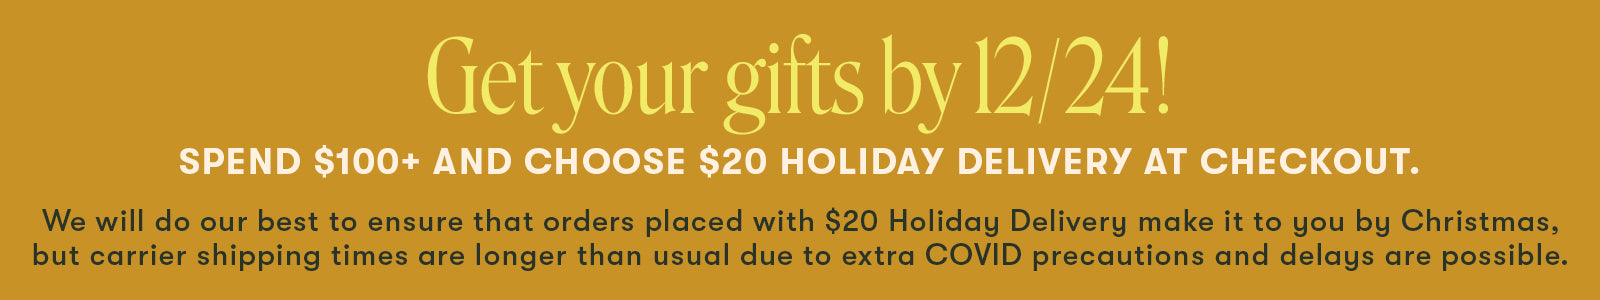 Get your gifts by 12/24 - Choose $20 delivery at checkout